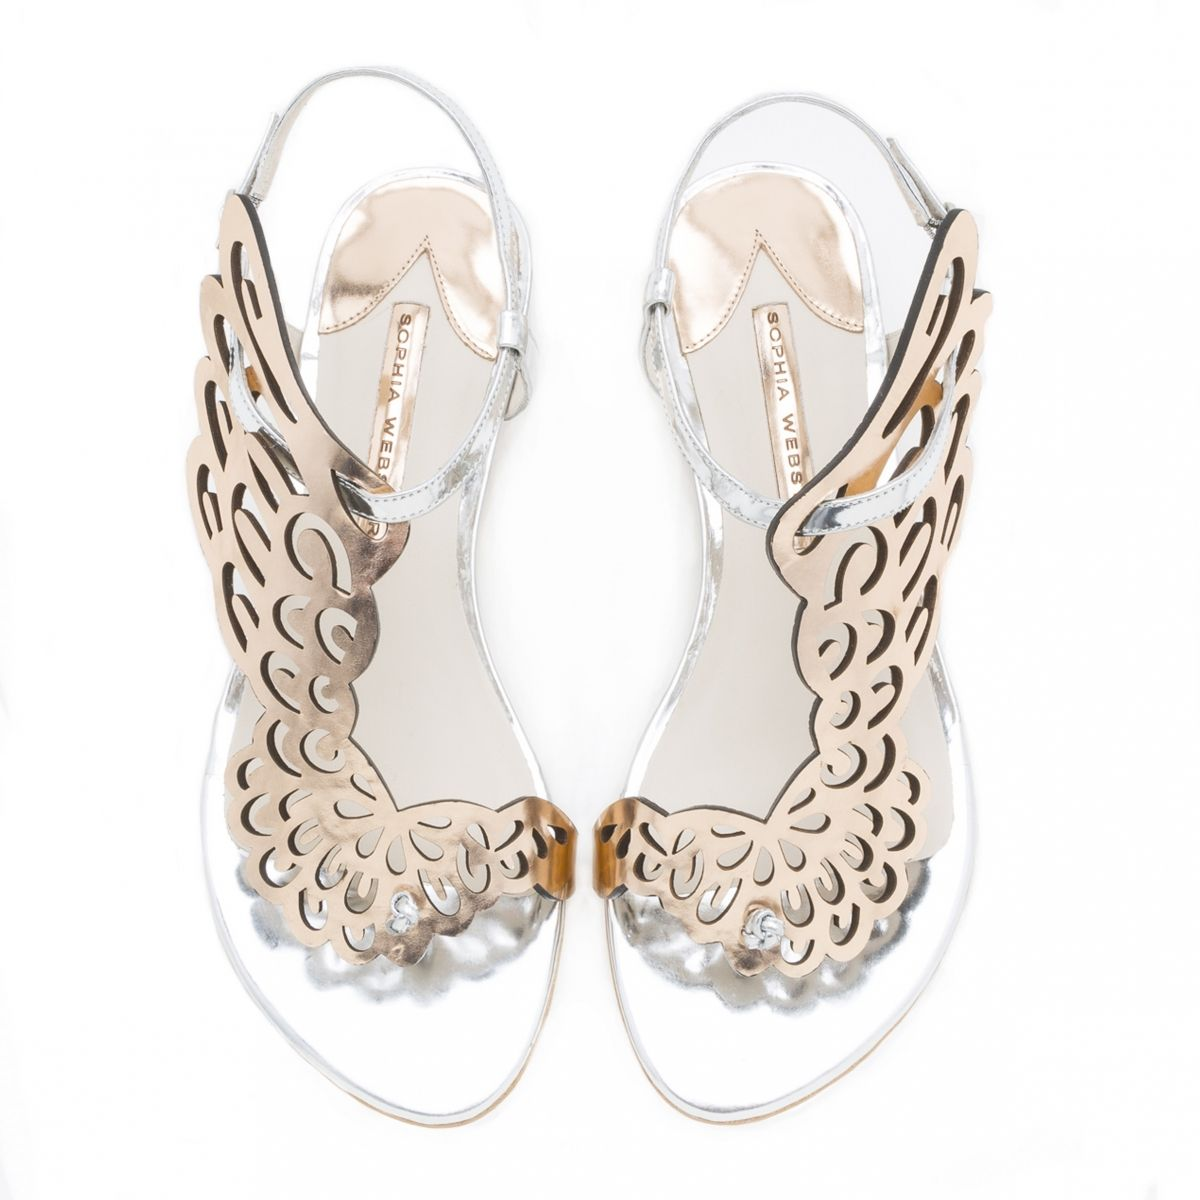 SOPHIA WEBSTER - Bibi papillon appartements : Chaussure Fashion